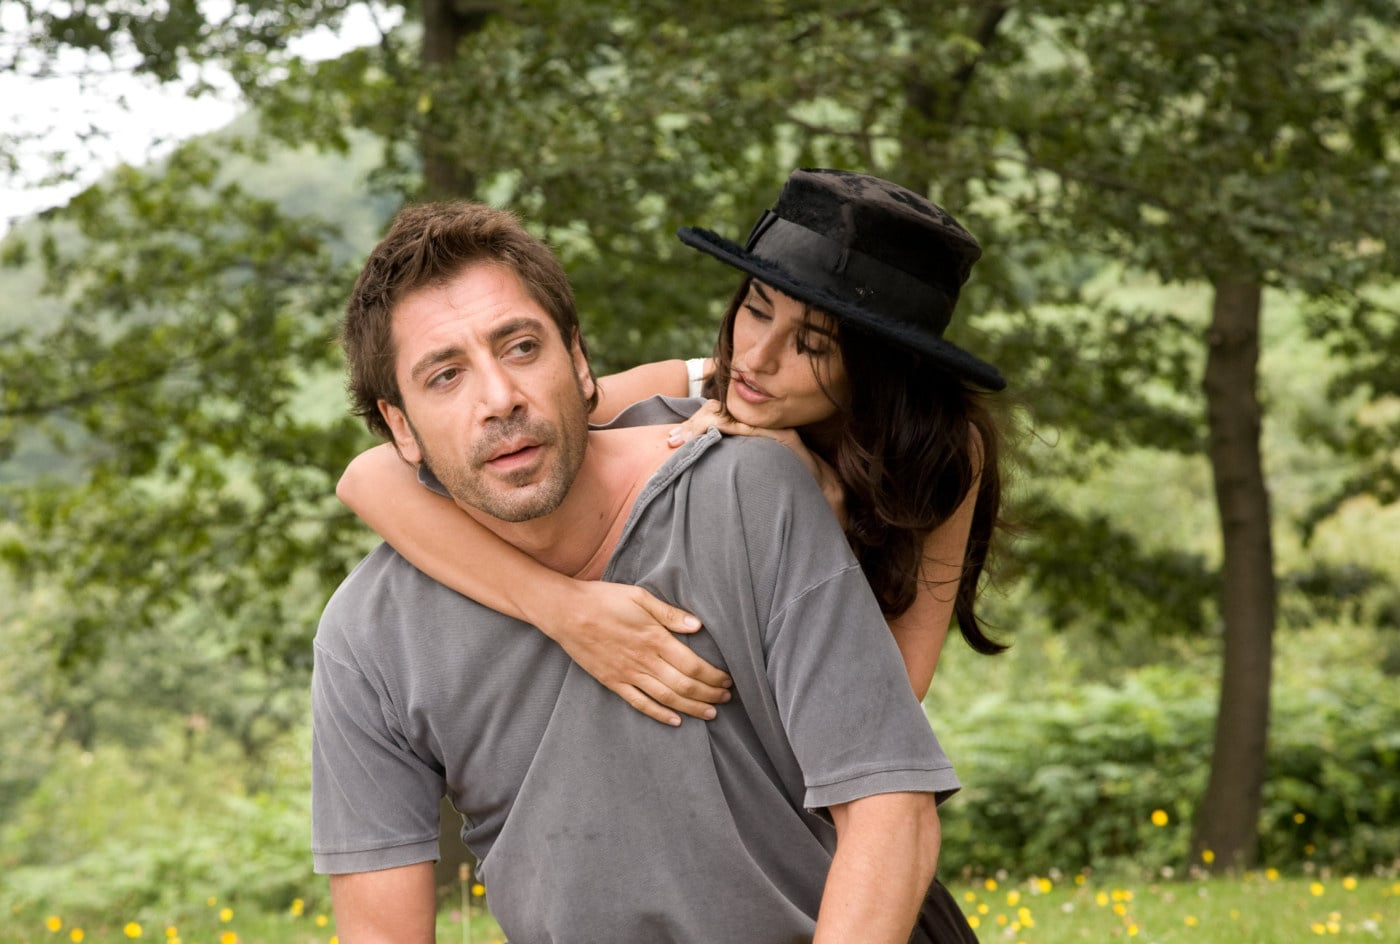 Penelope Cruz and Javier Bardem movie to open Cannes